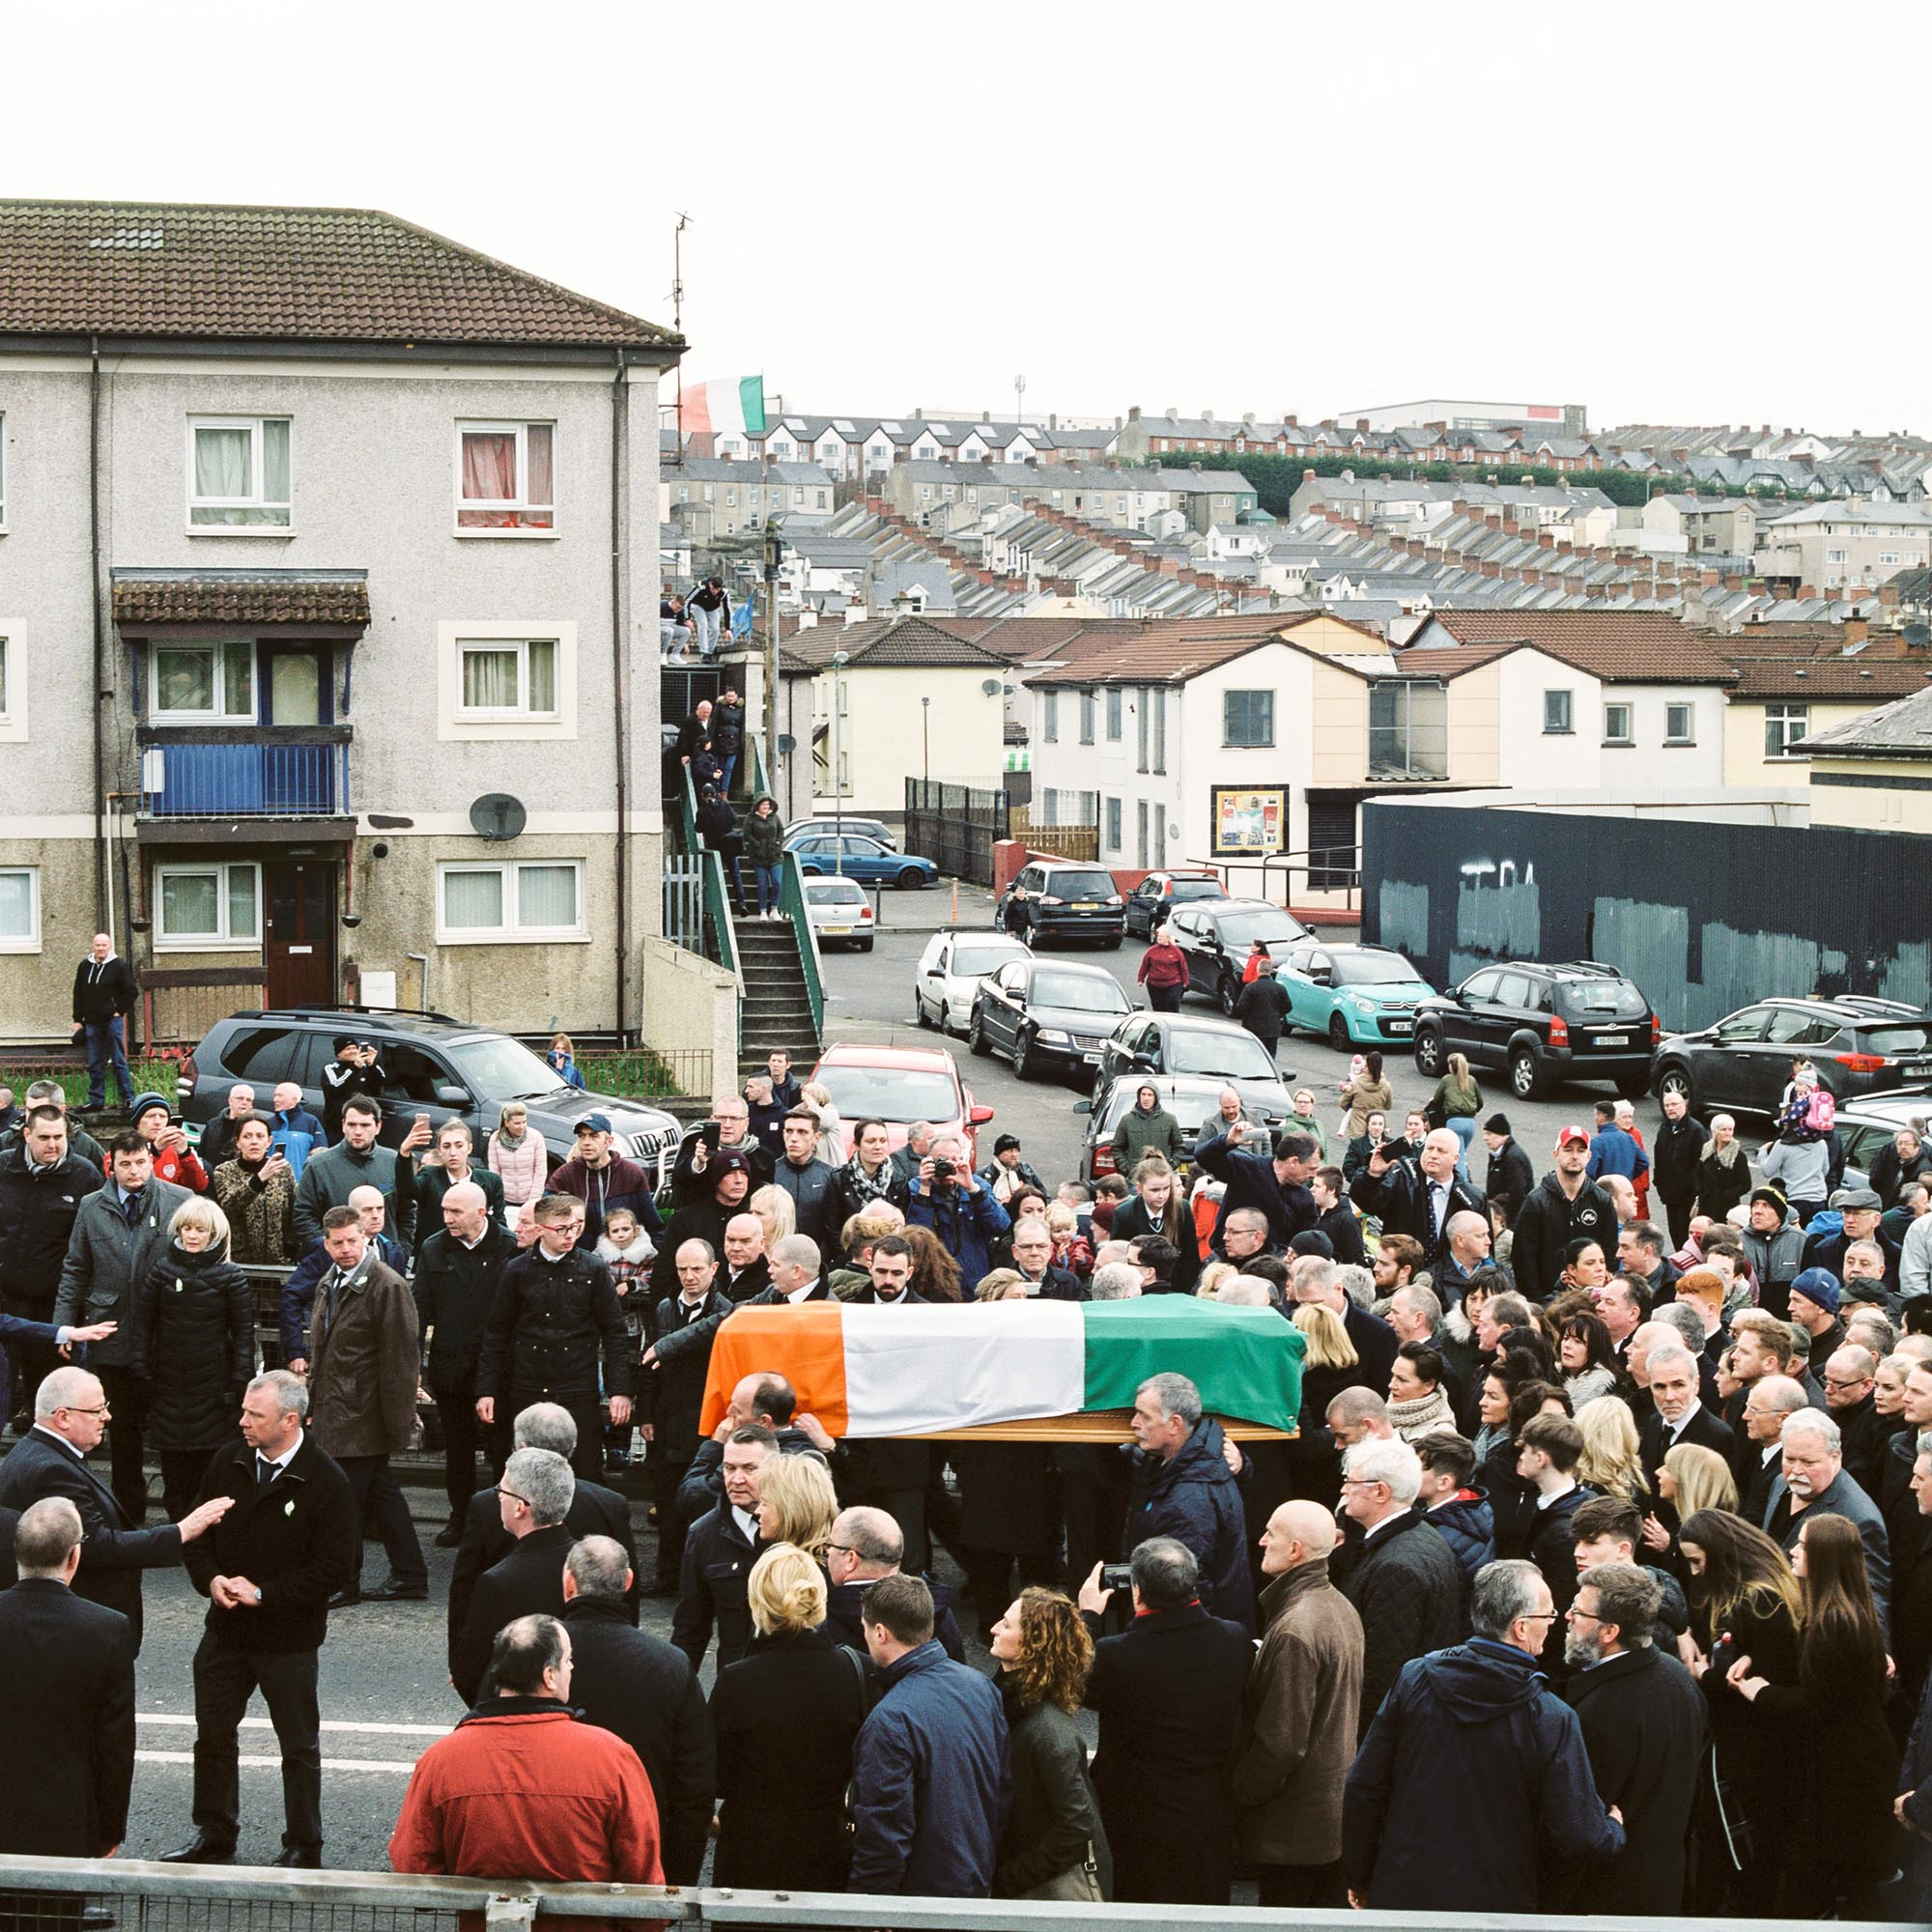 Martin McGuinness' coffin is carried through the Bogside, Derry.